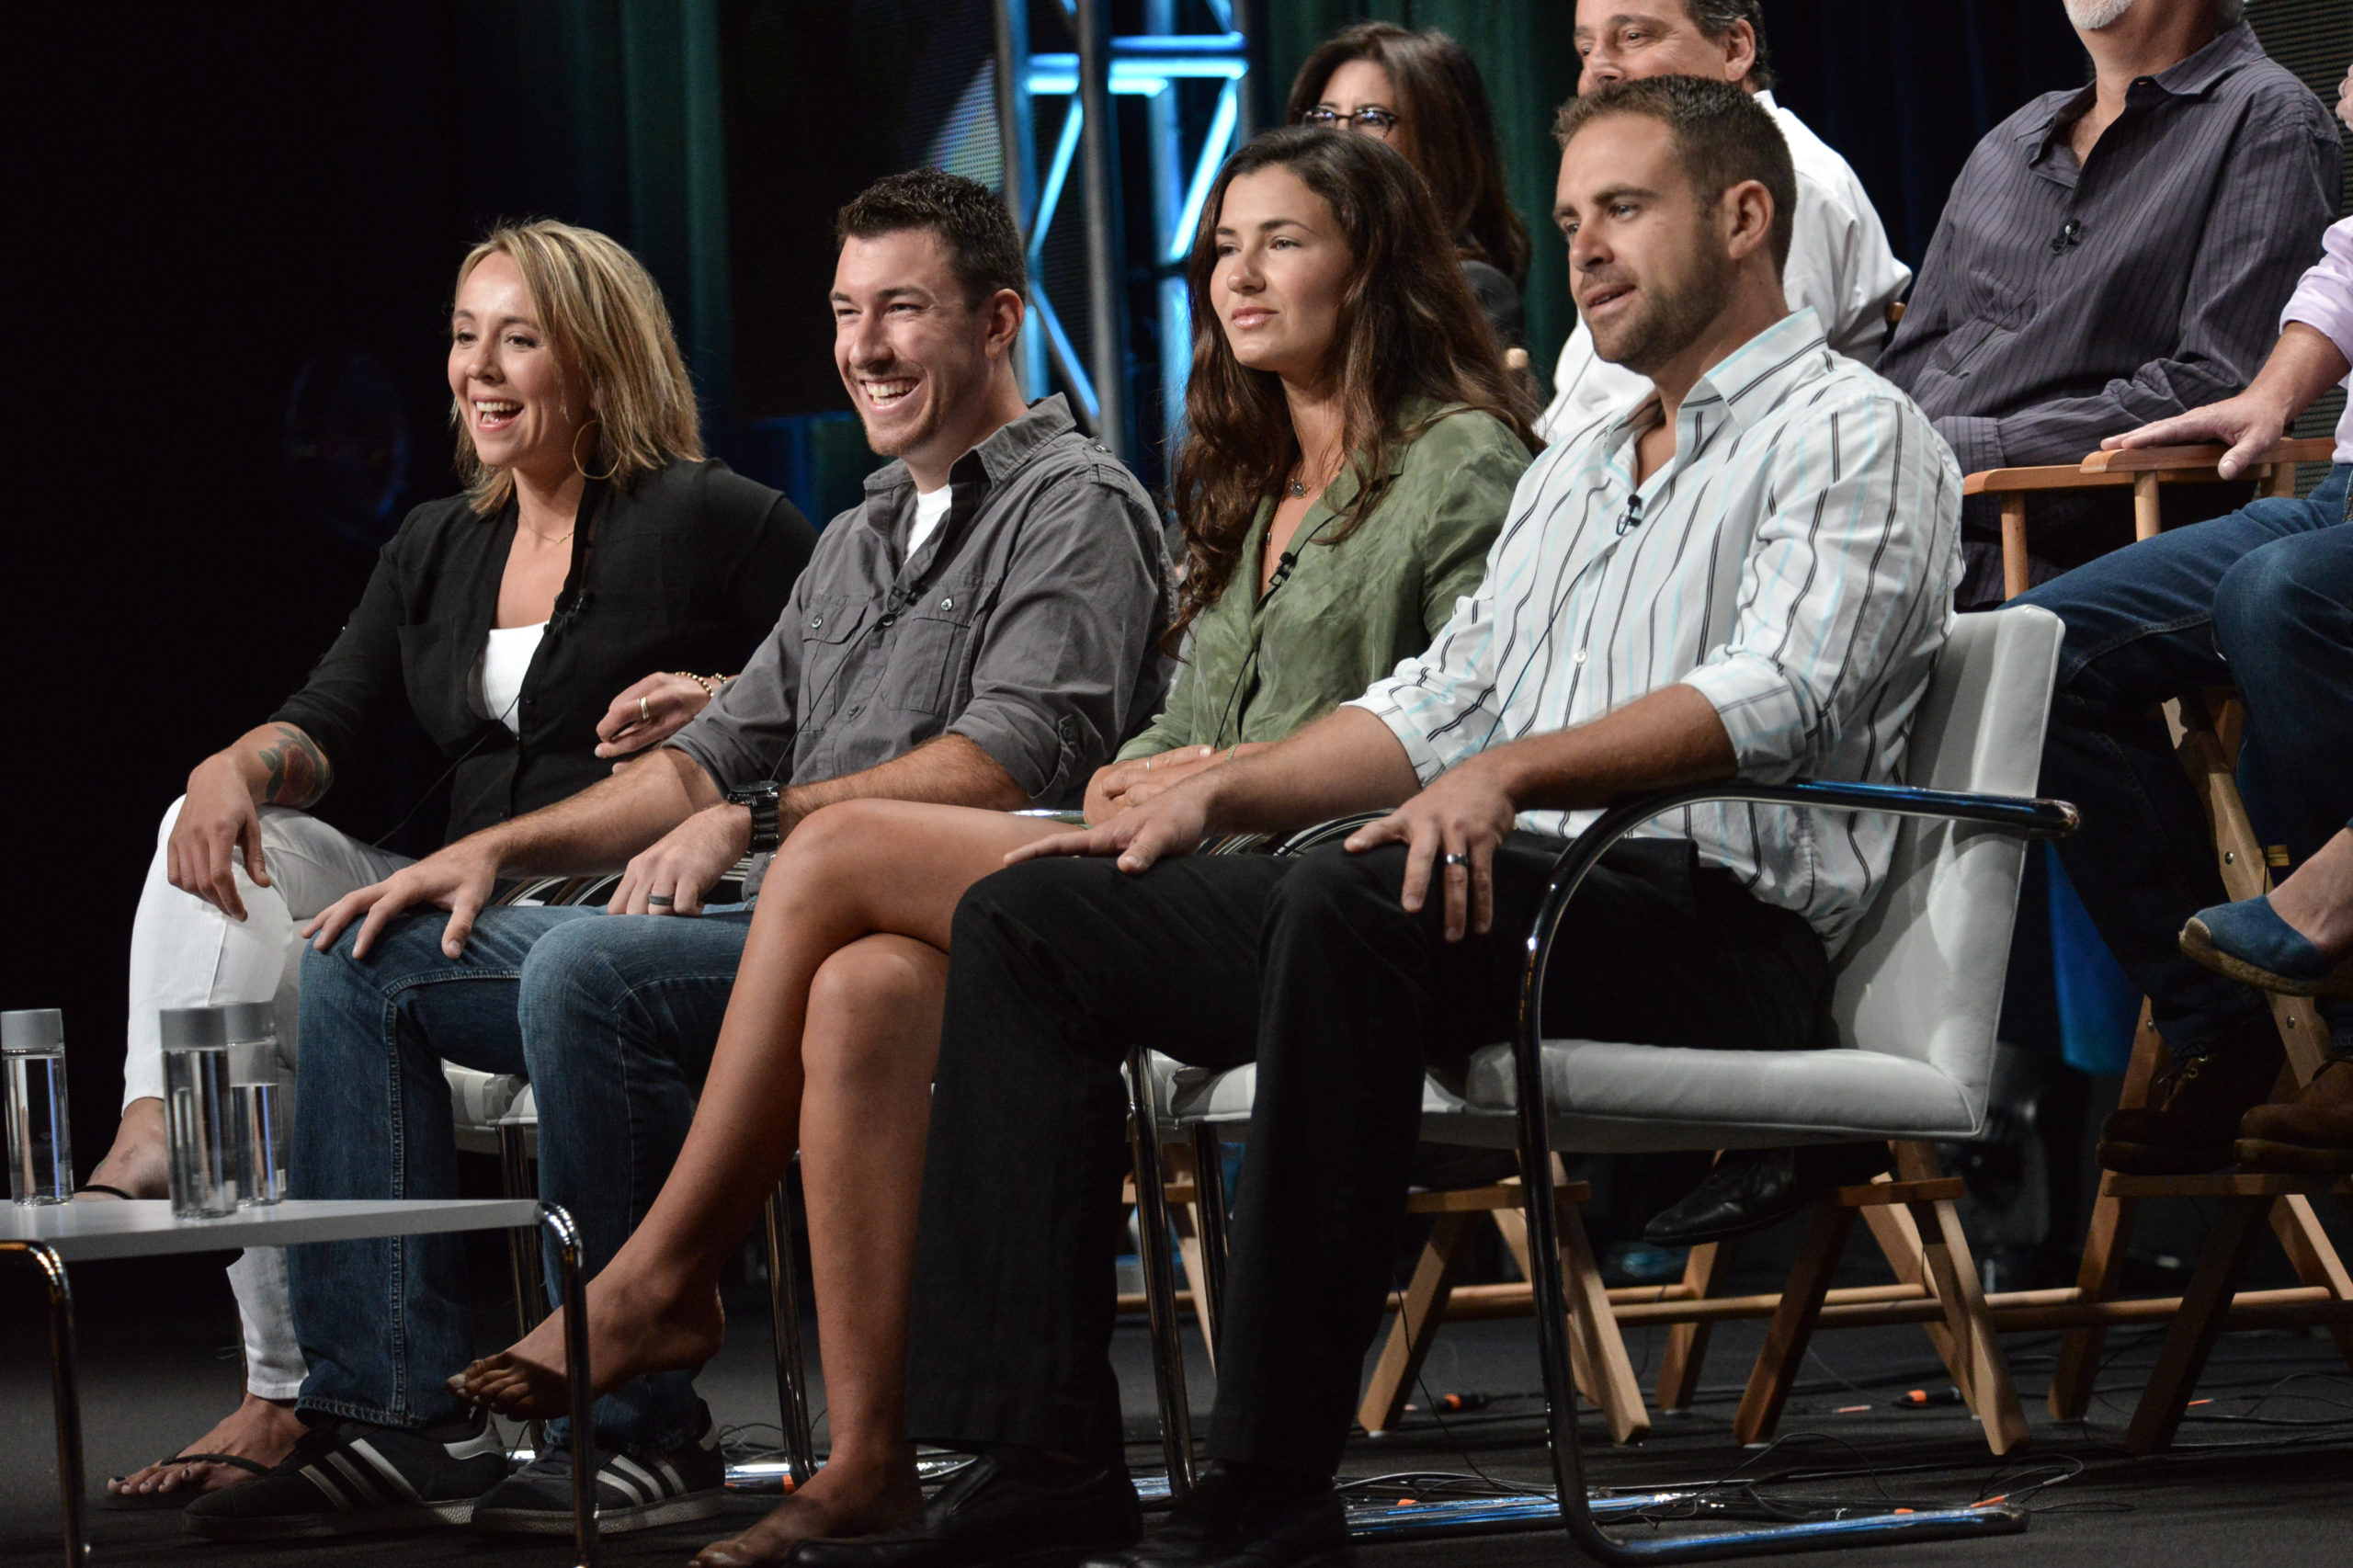 Three Major Legal Concerns for Reality TV Participants